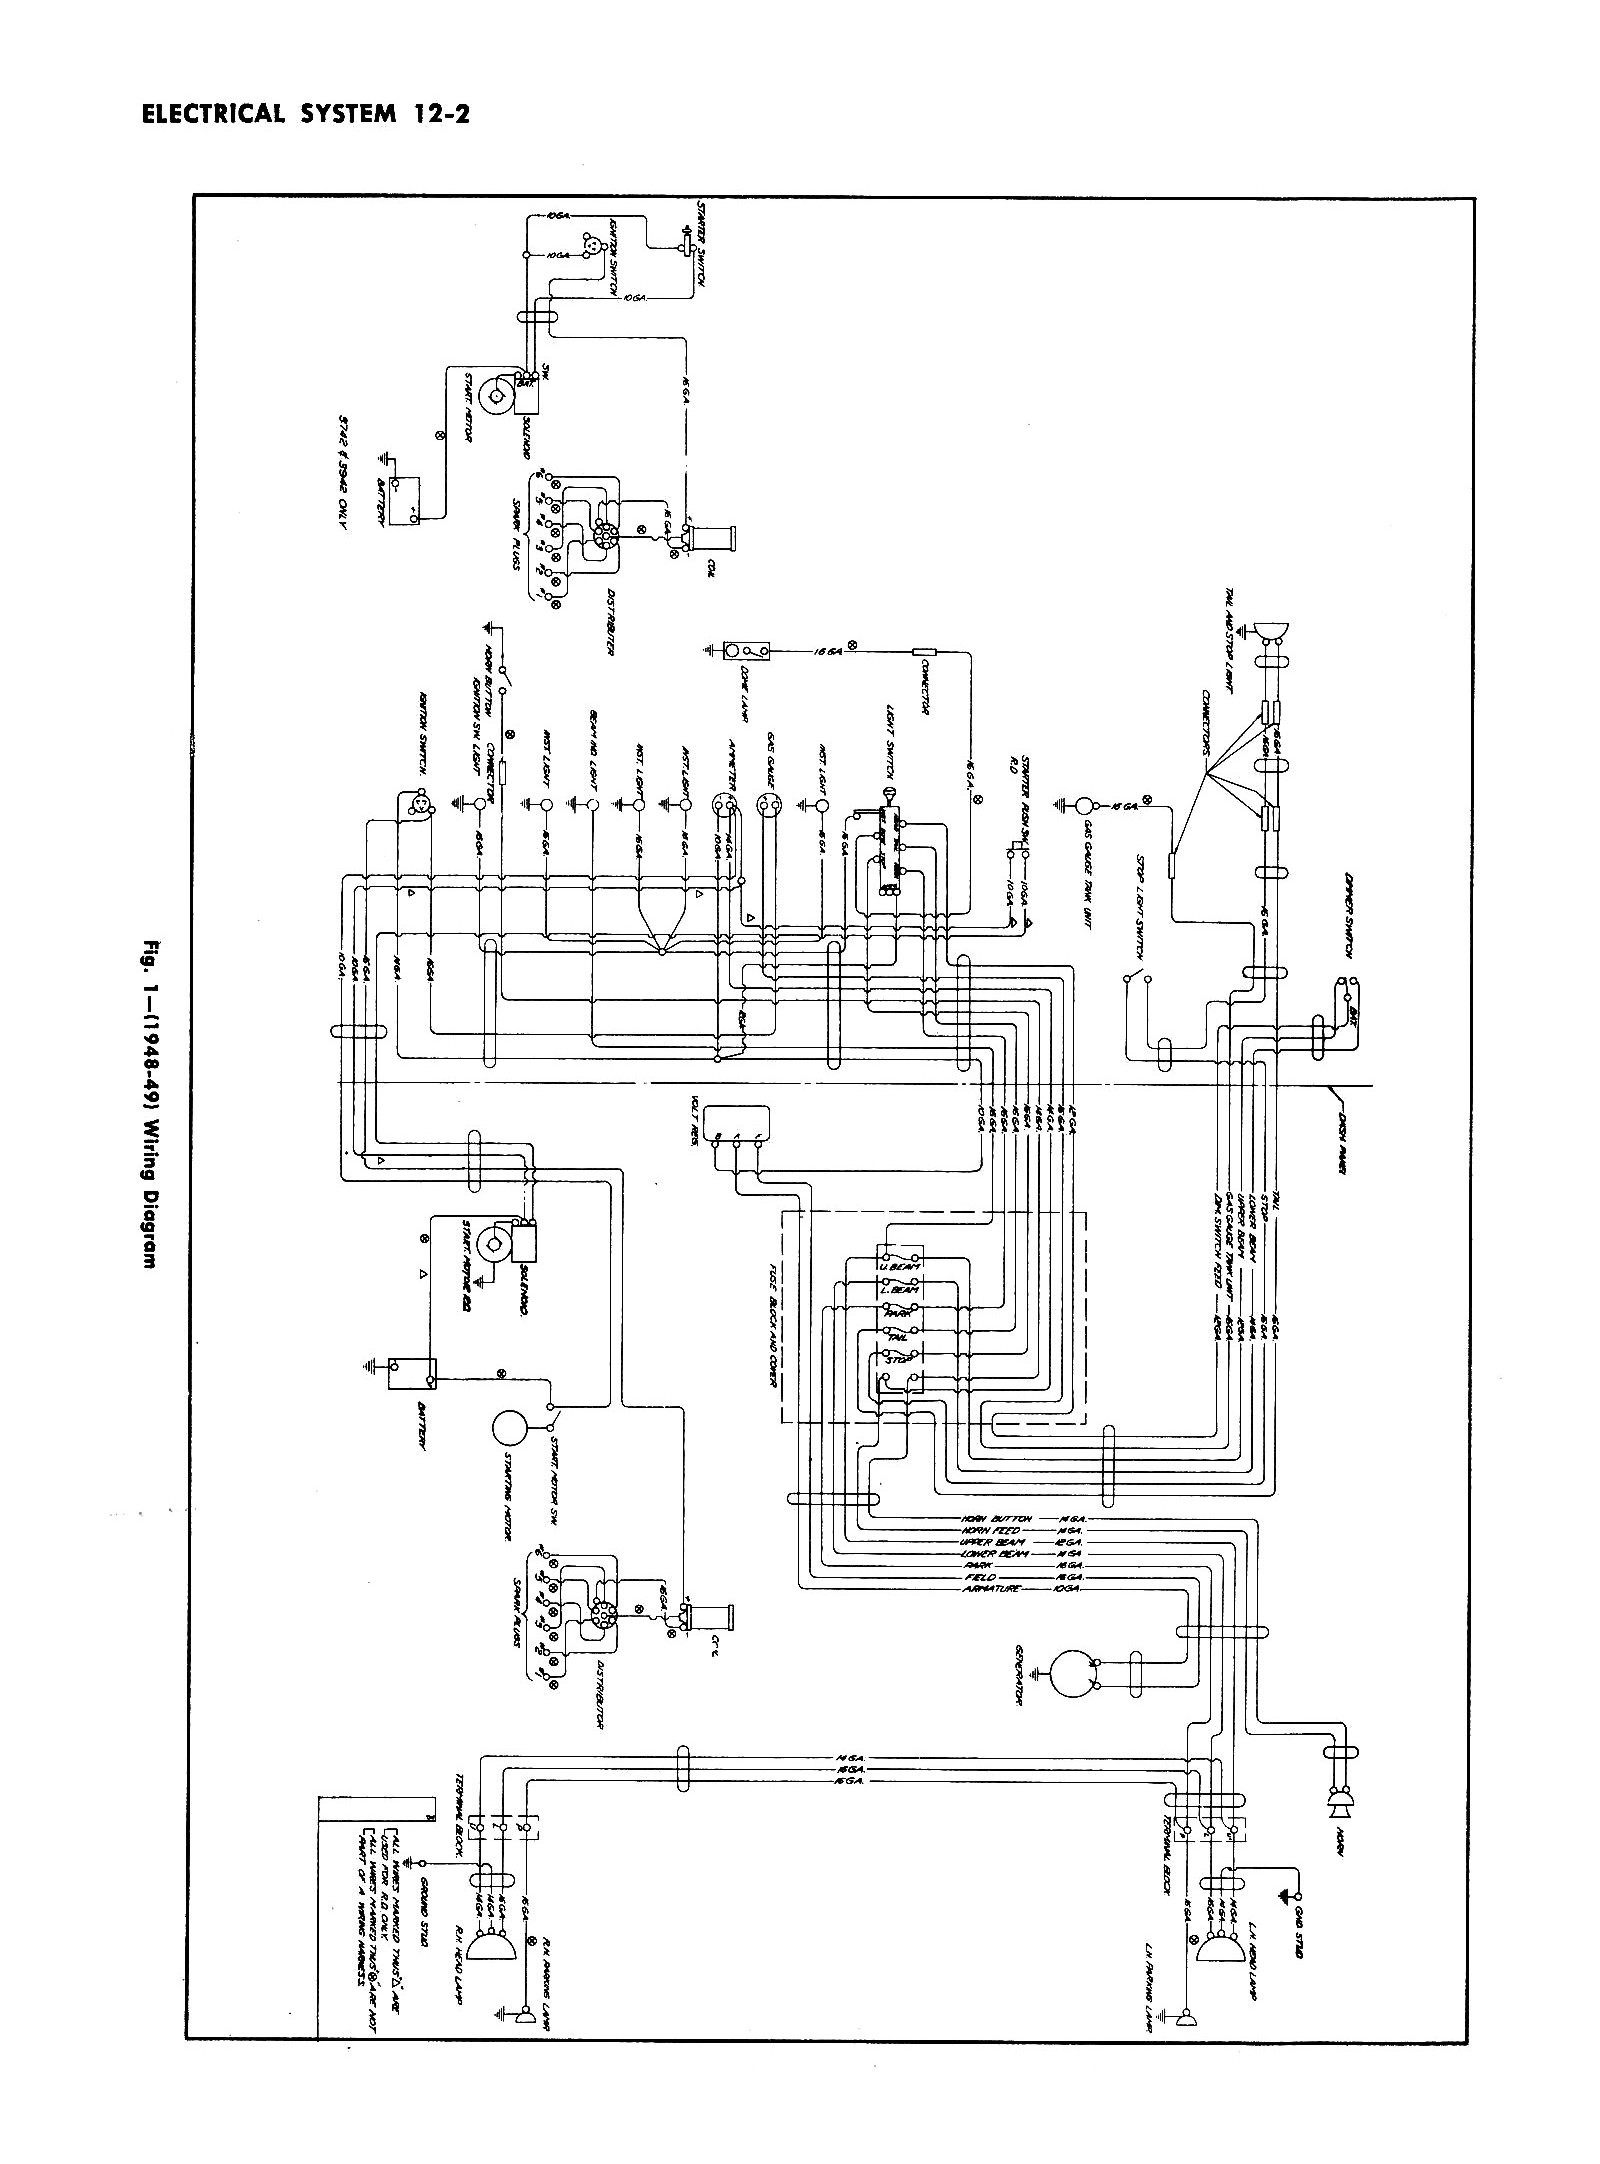 48car wiring diagrams for chevy c4500 trucks readingrat net GMC Truck Wiring Diagrams at gsmx.co